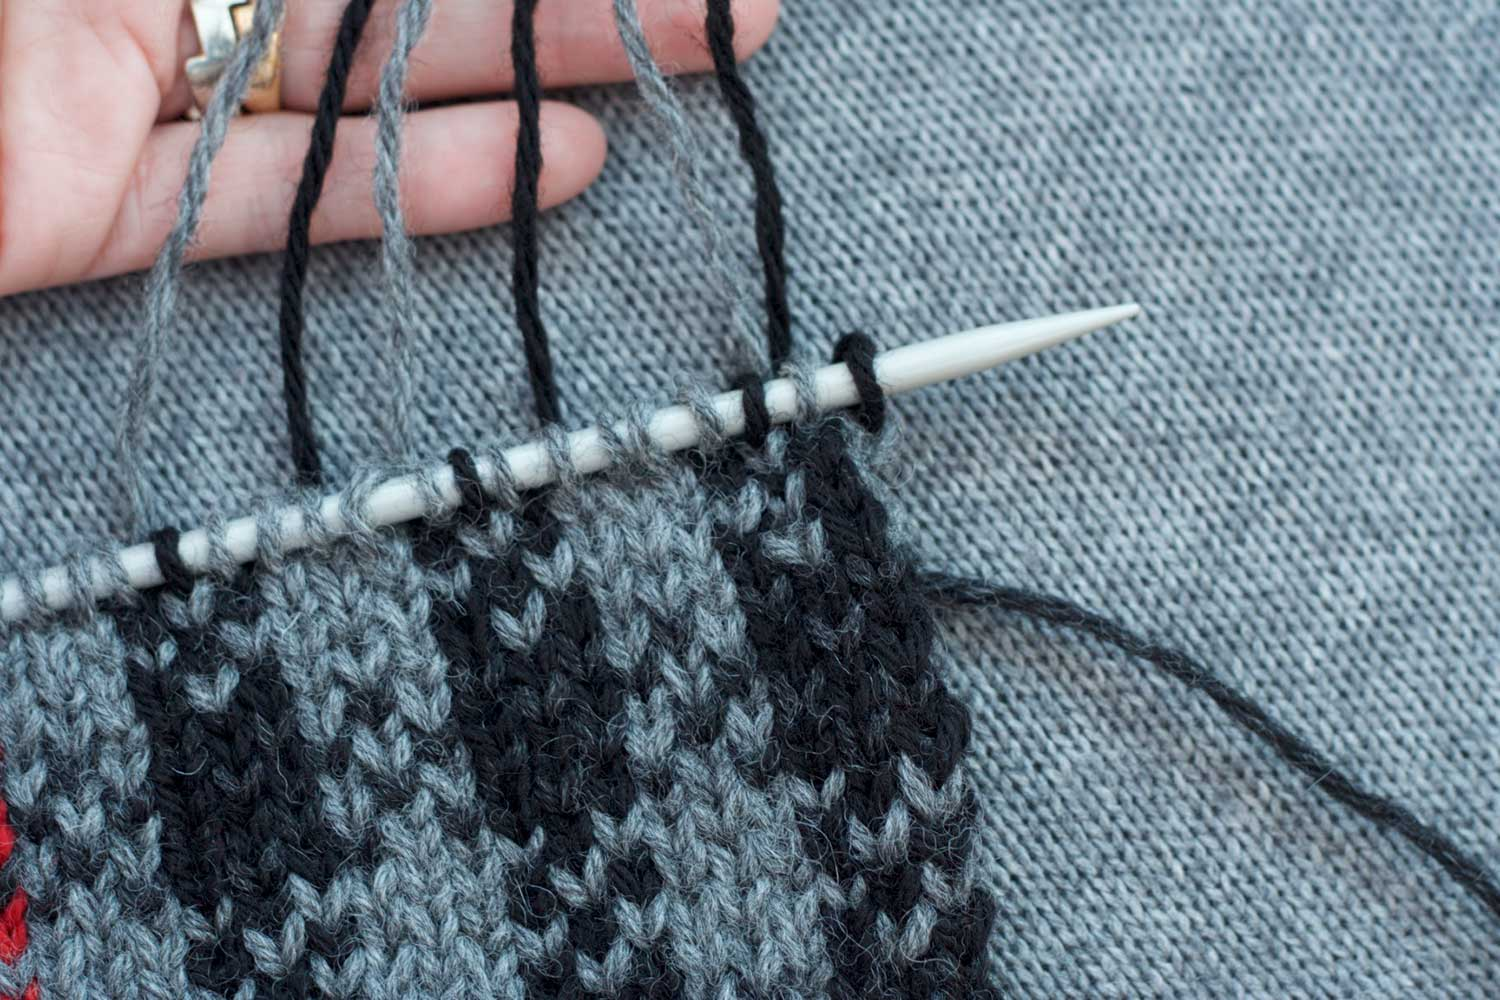 Grey and black plaid stitch pattern on the needles with several strands of yarn pulled up above the needle and laid across a hand.